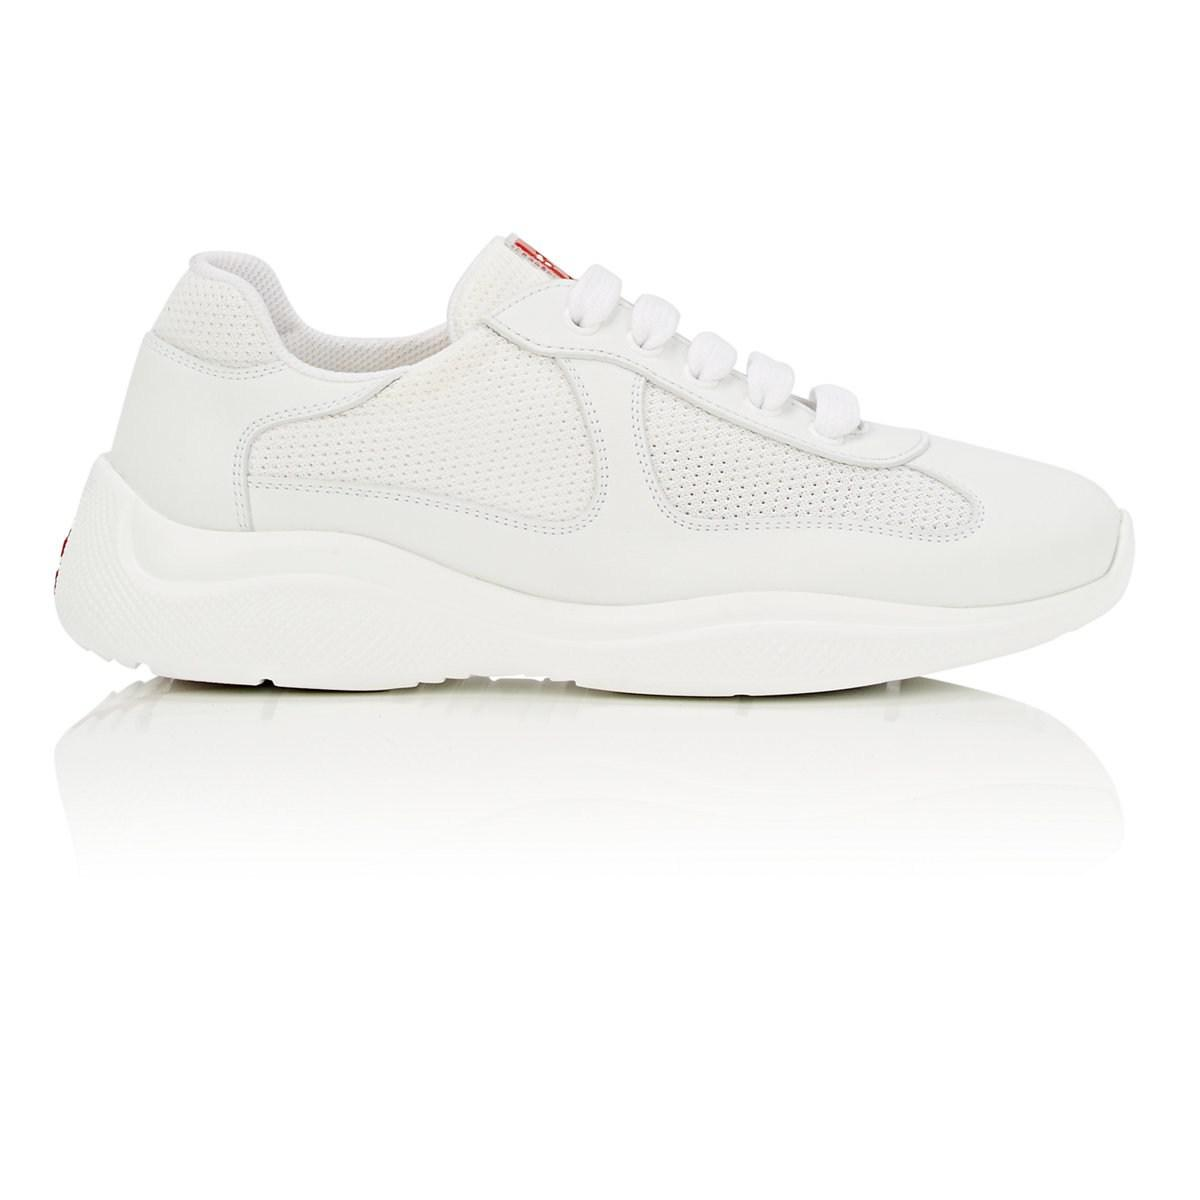 d3f65740284 Lyst - Prada Mixed-material Sneakers in White